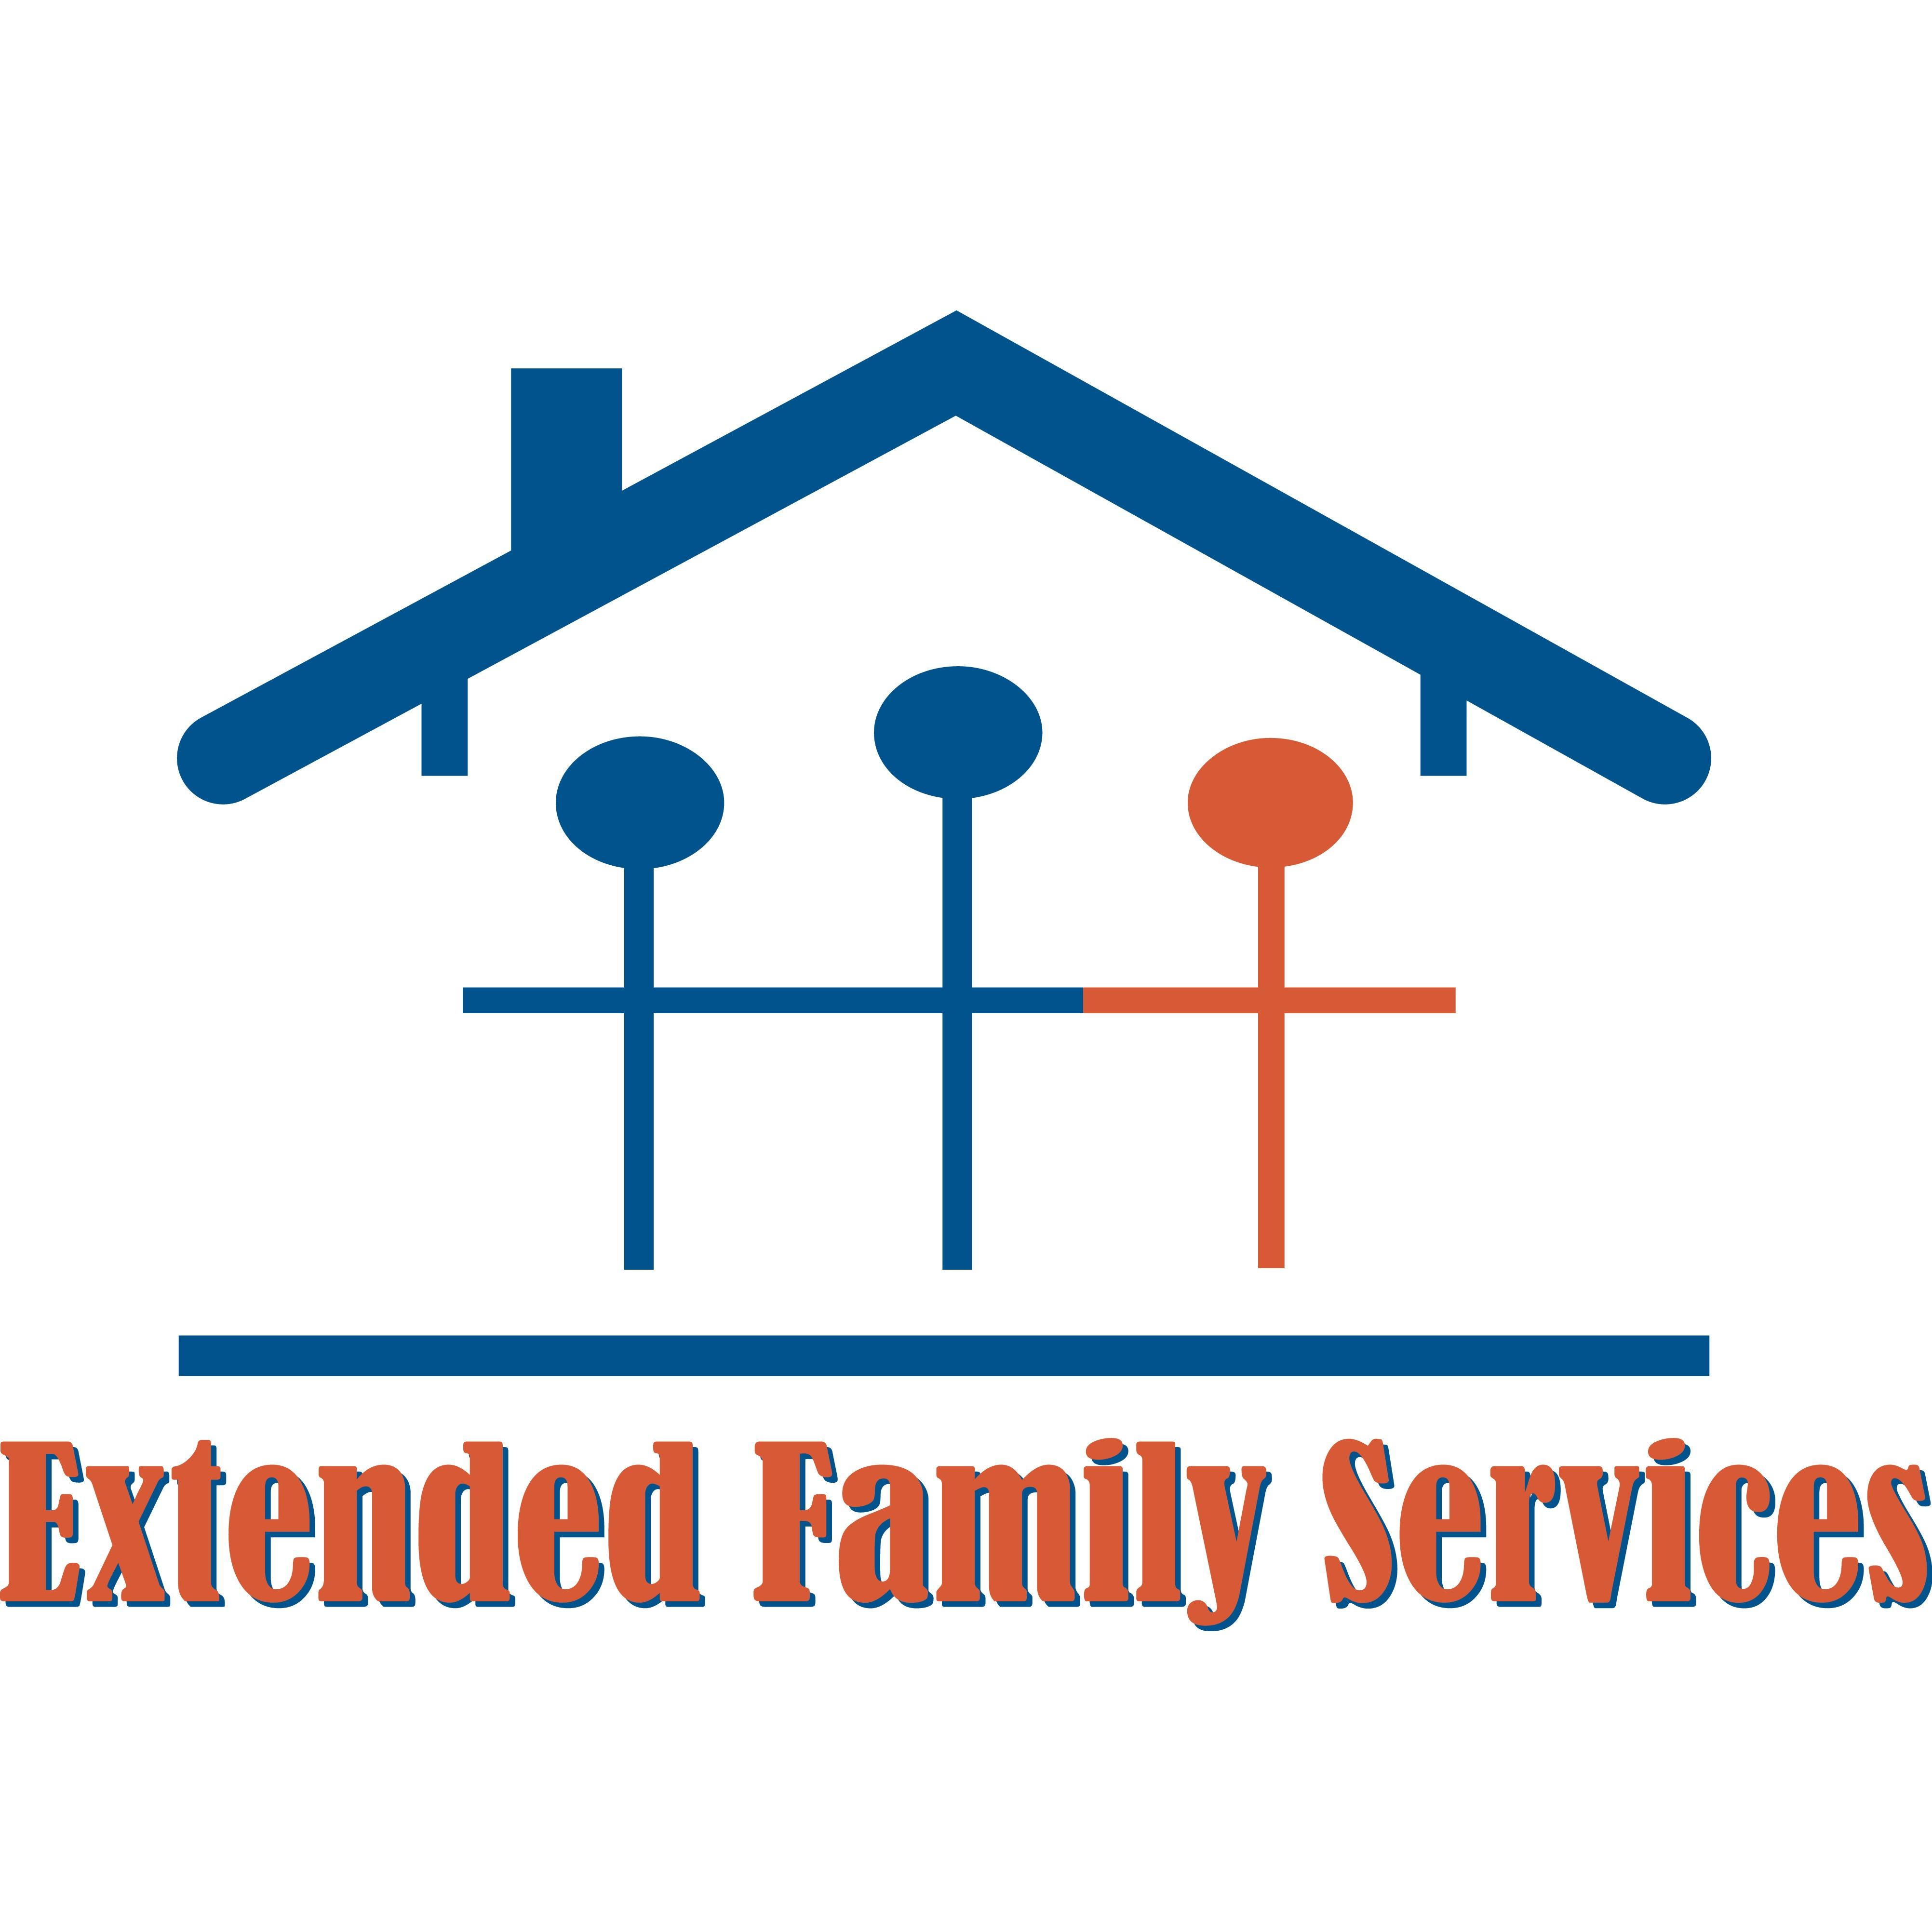 Extended Family Services image 3